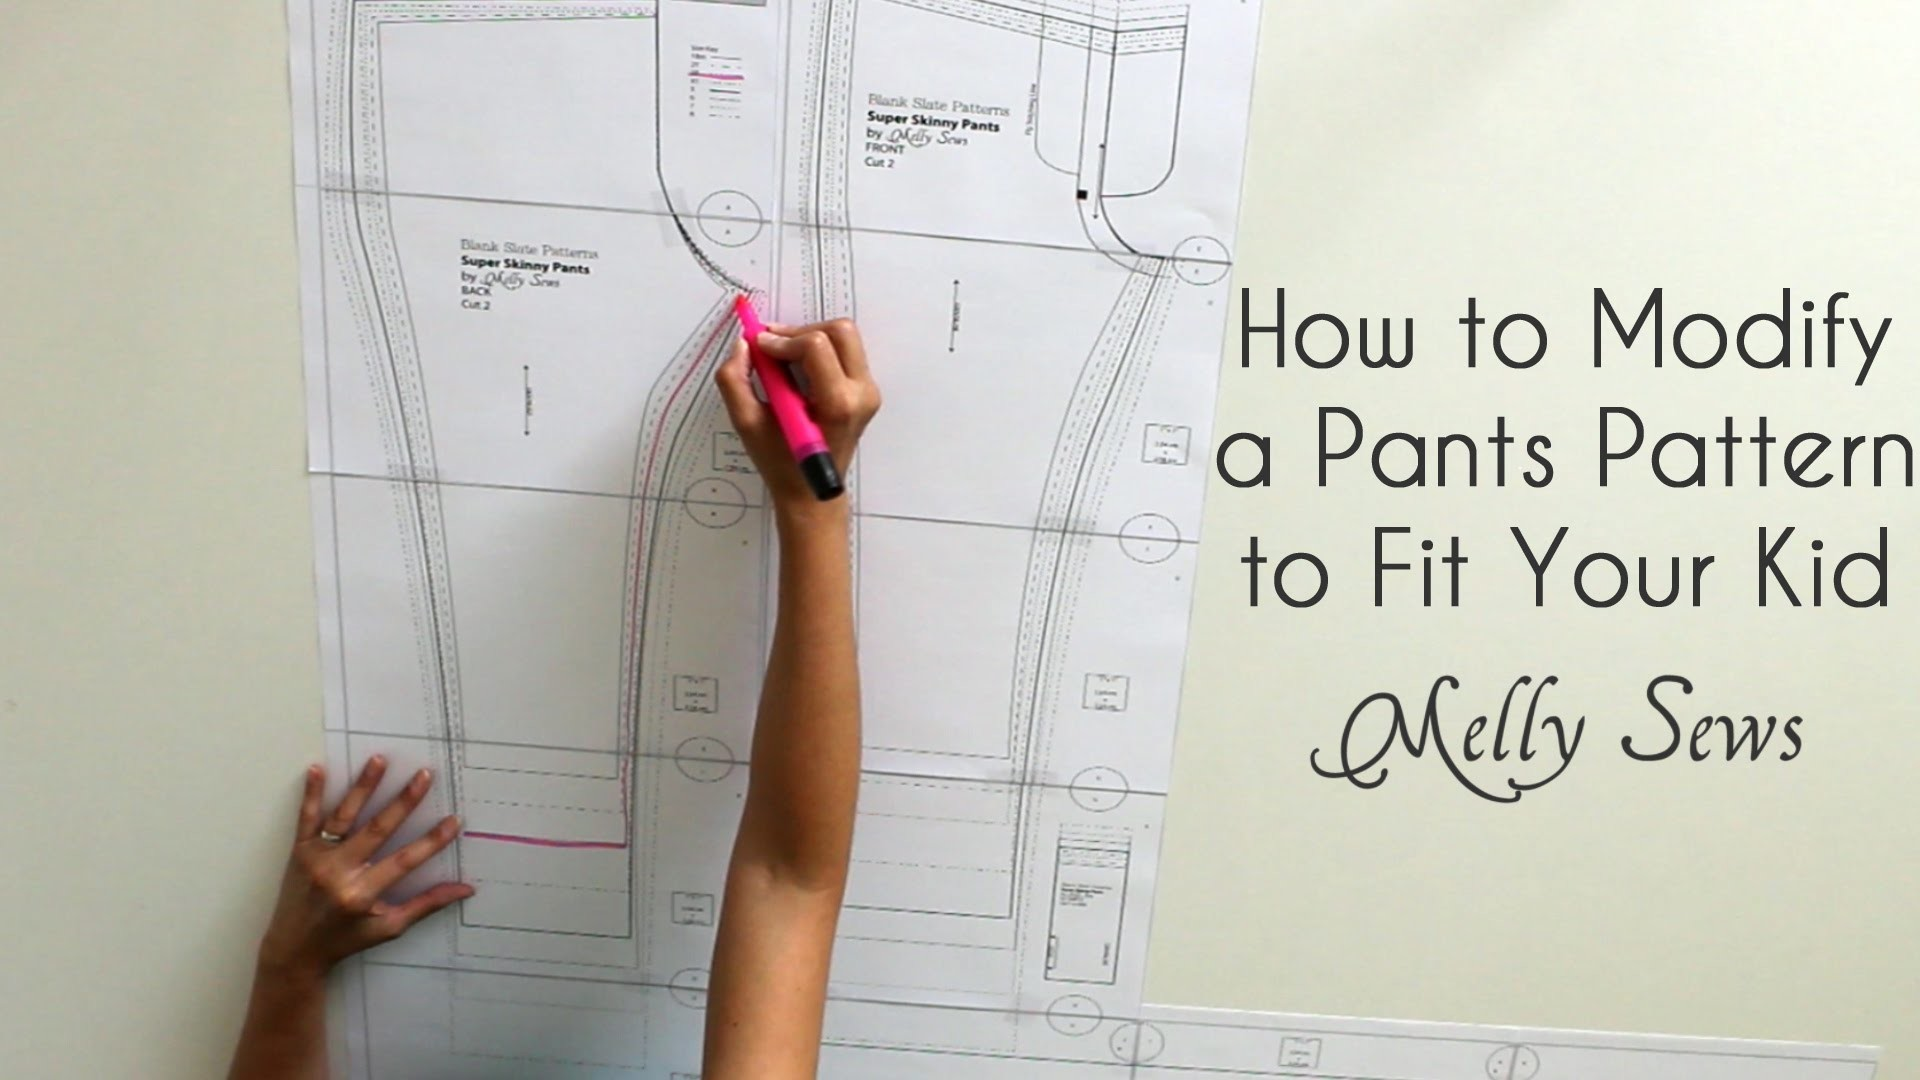 How to Fit a Pants Pattern for Kids